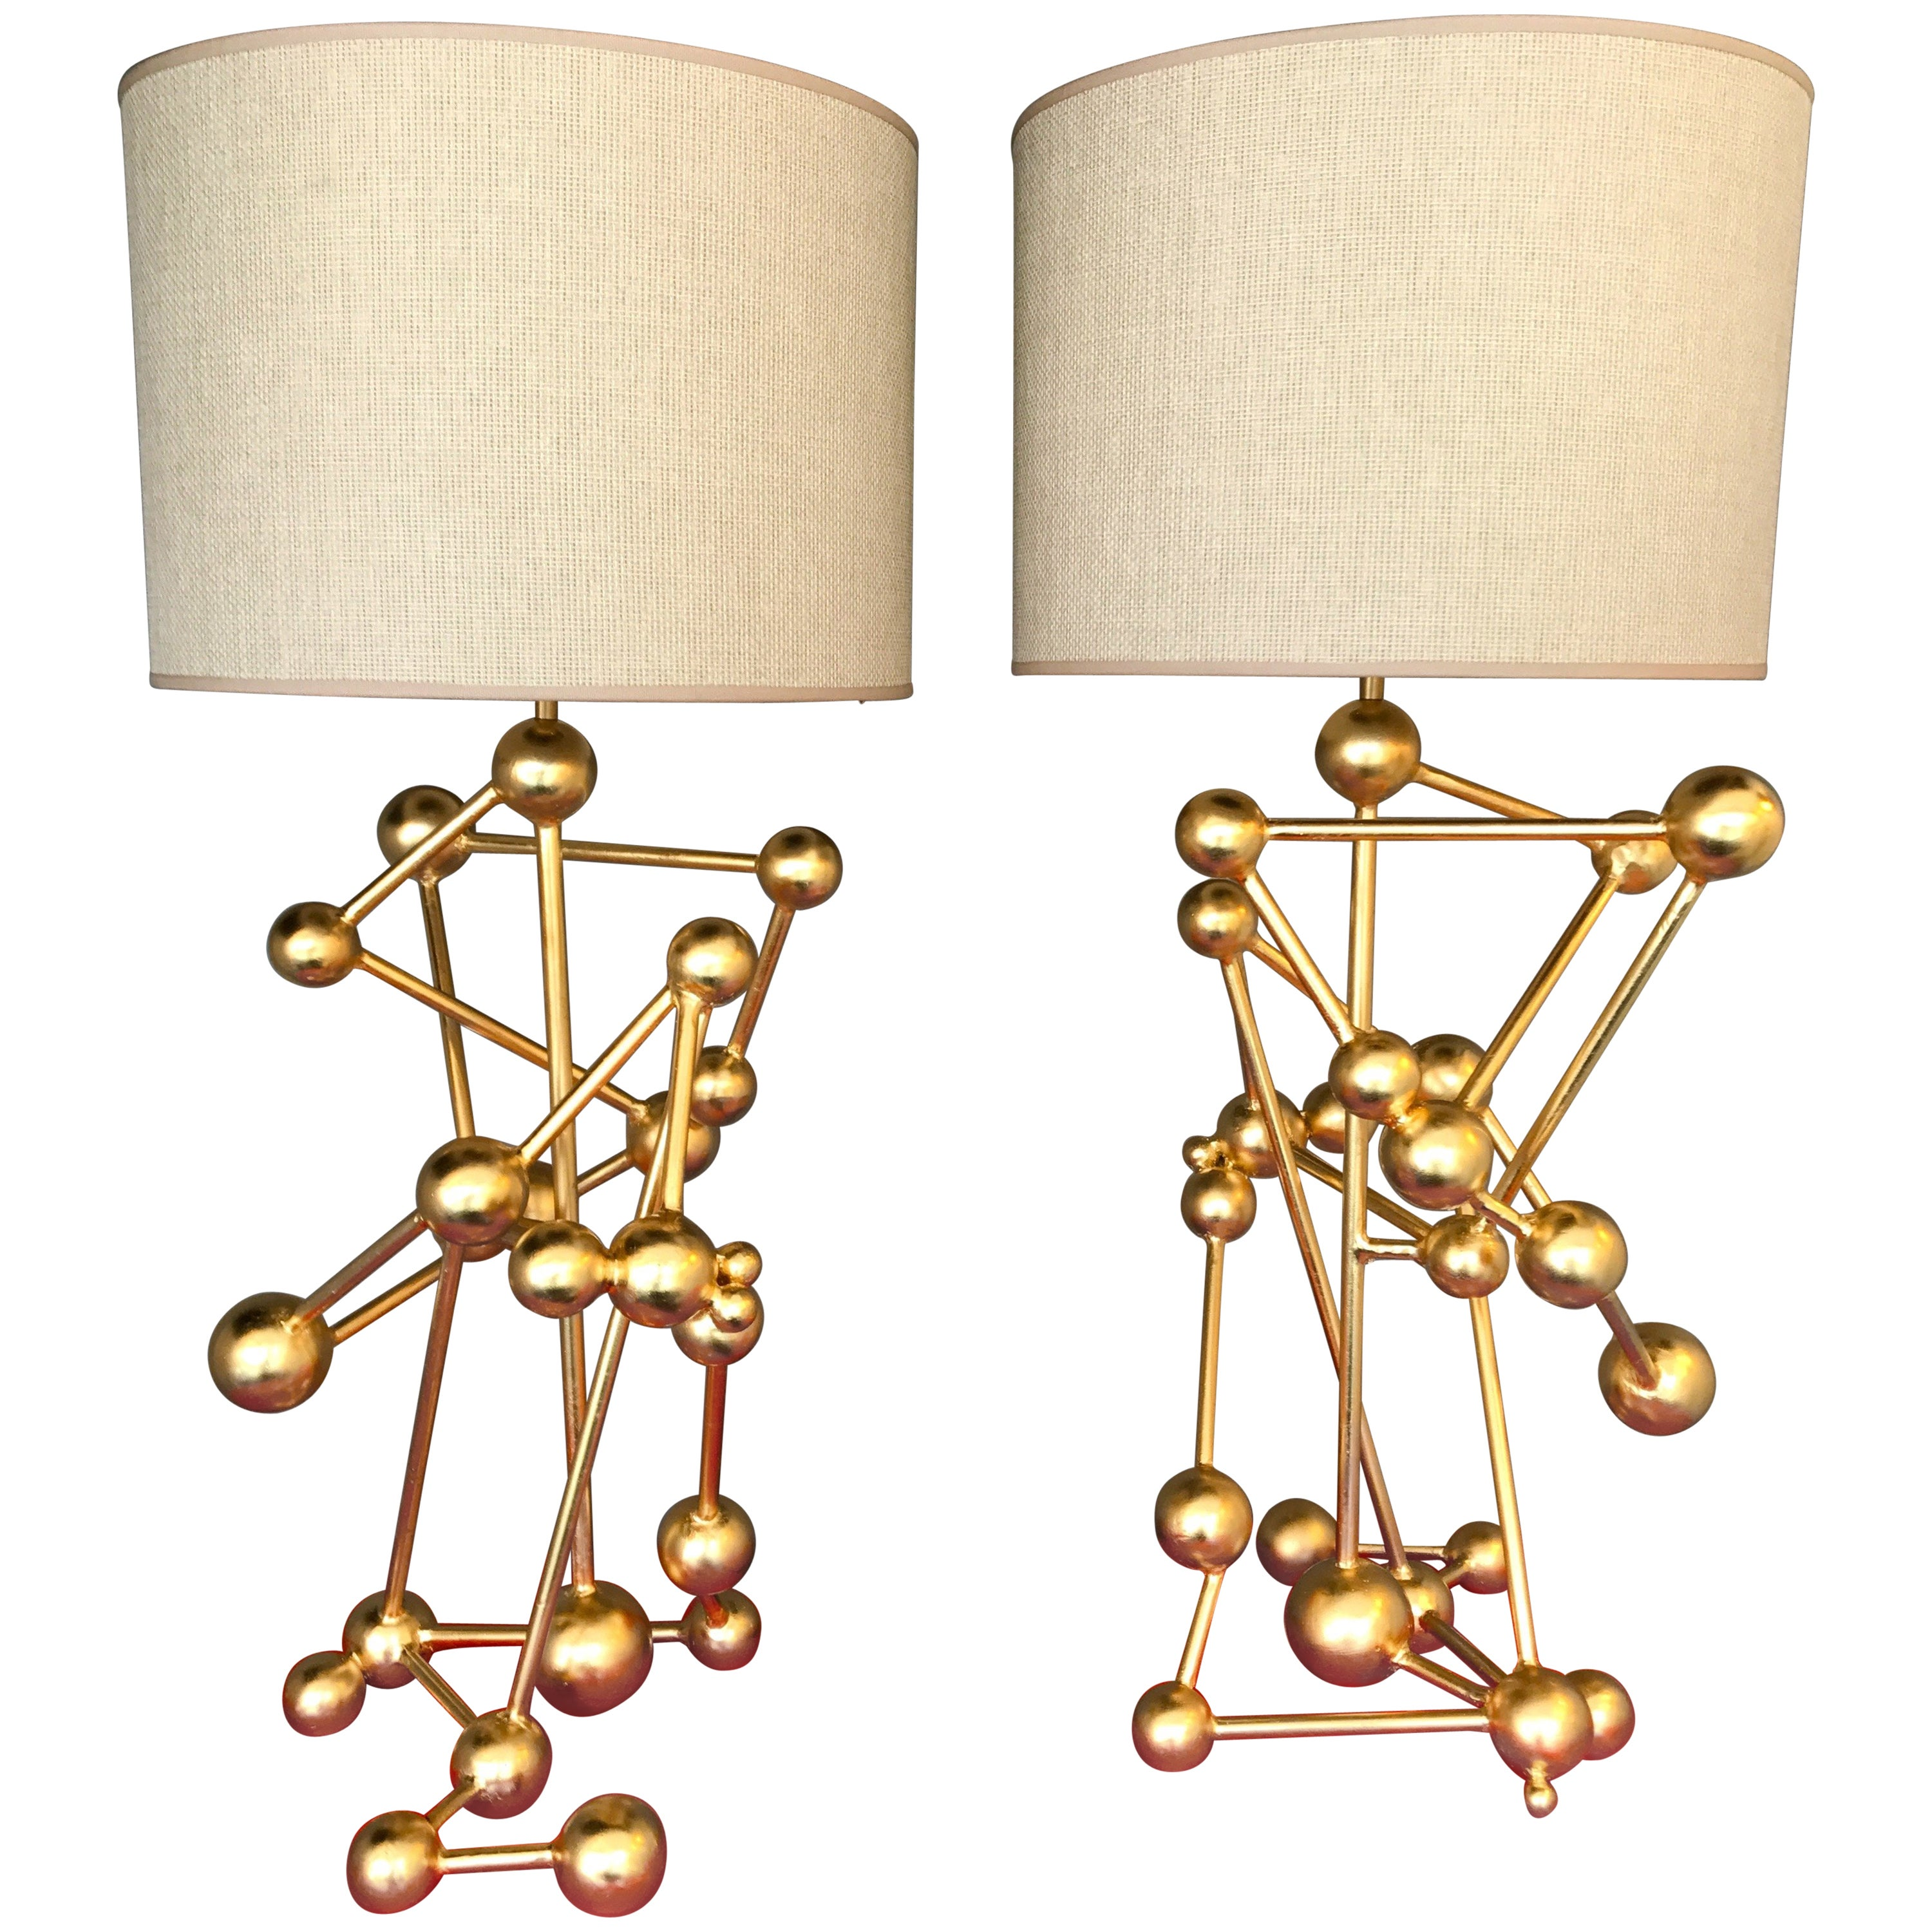 Contemporary Lamps Atomic Gold Leaf by Antonio Cagianelli, Italy